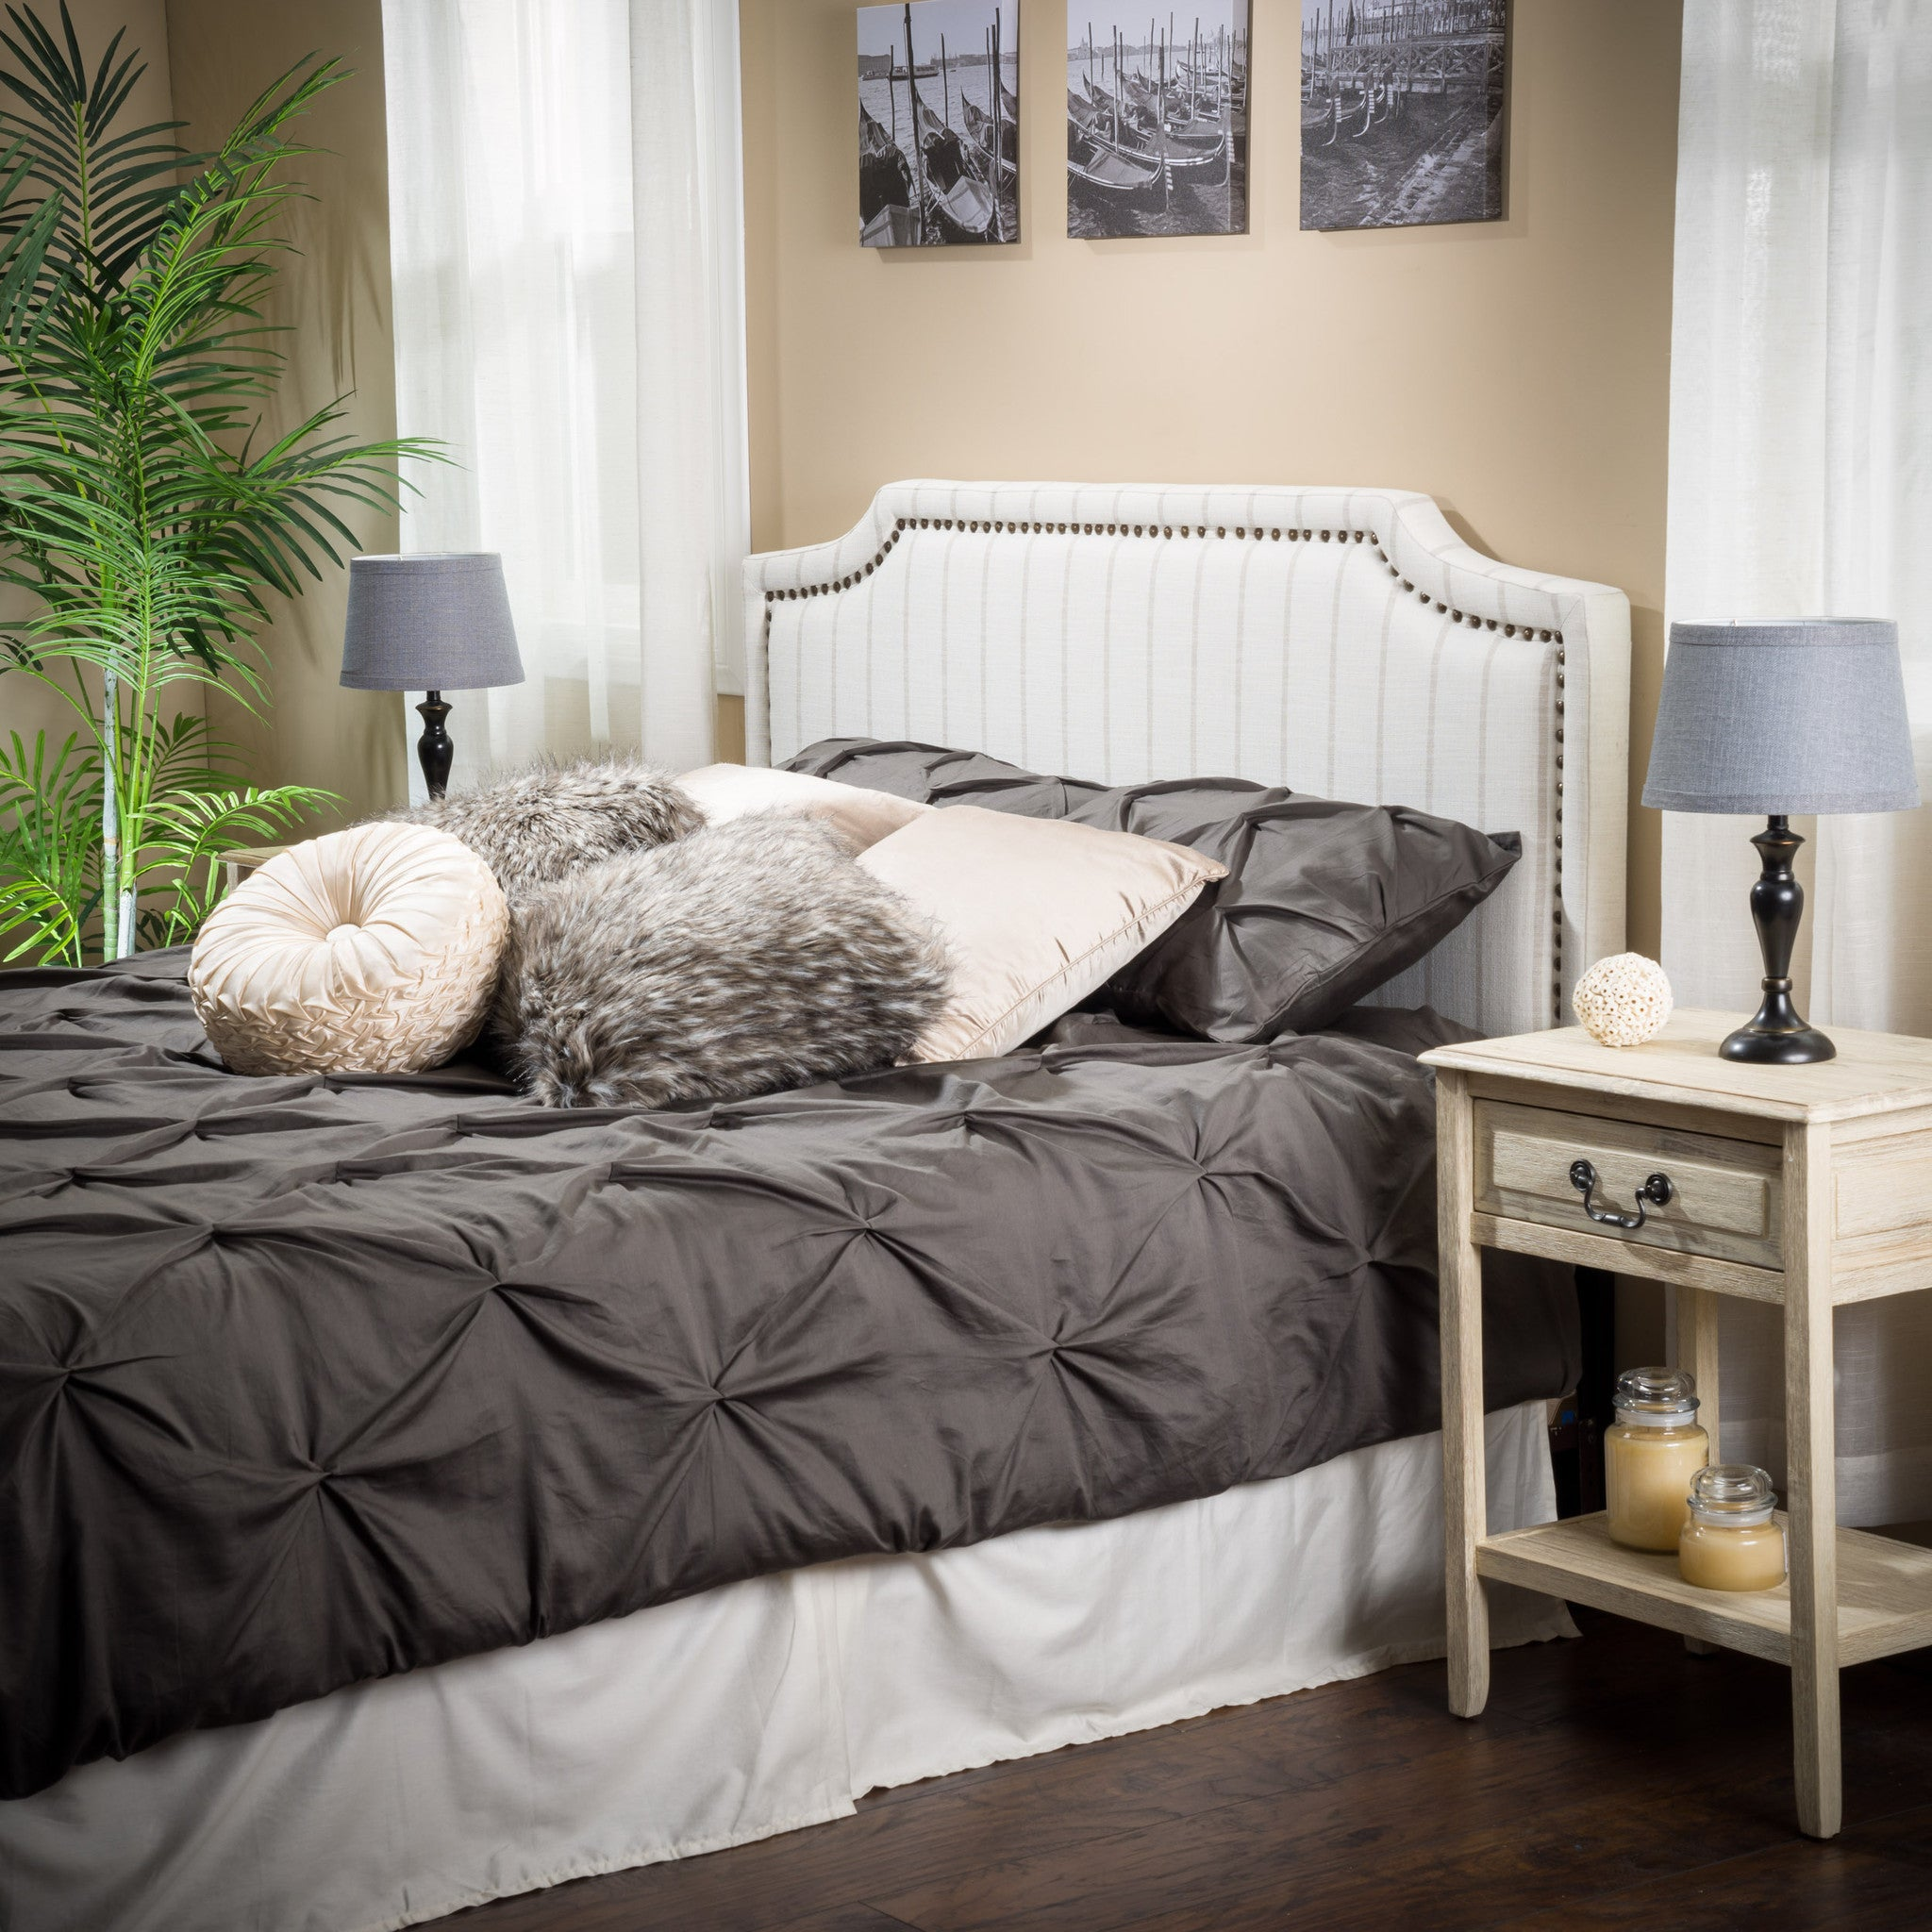 bedroom beds iron king tremendeous furniture bed canopy using white black with gray size linen cotton leather headboard decorating for and simple pillowcase